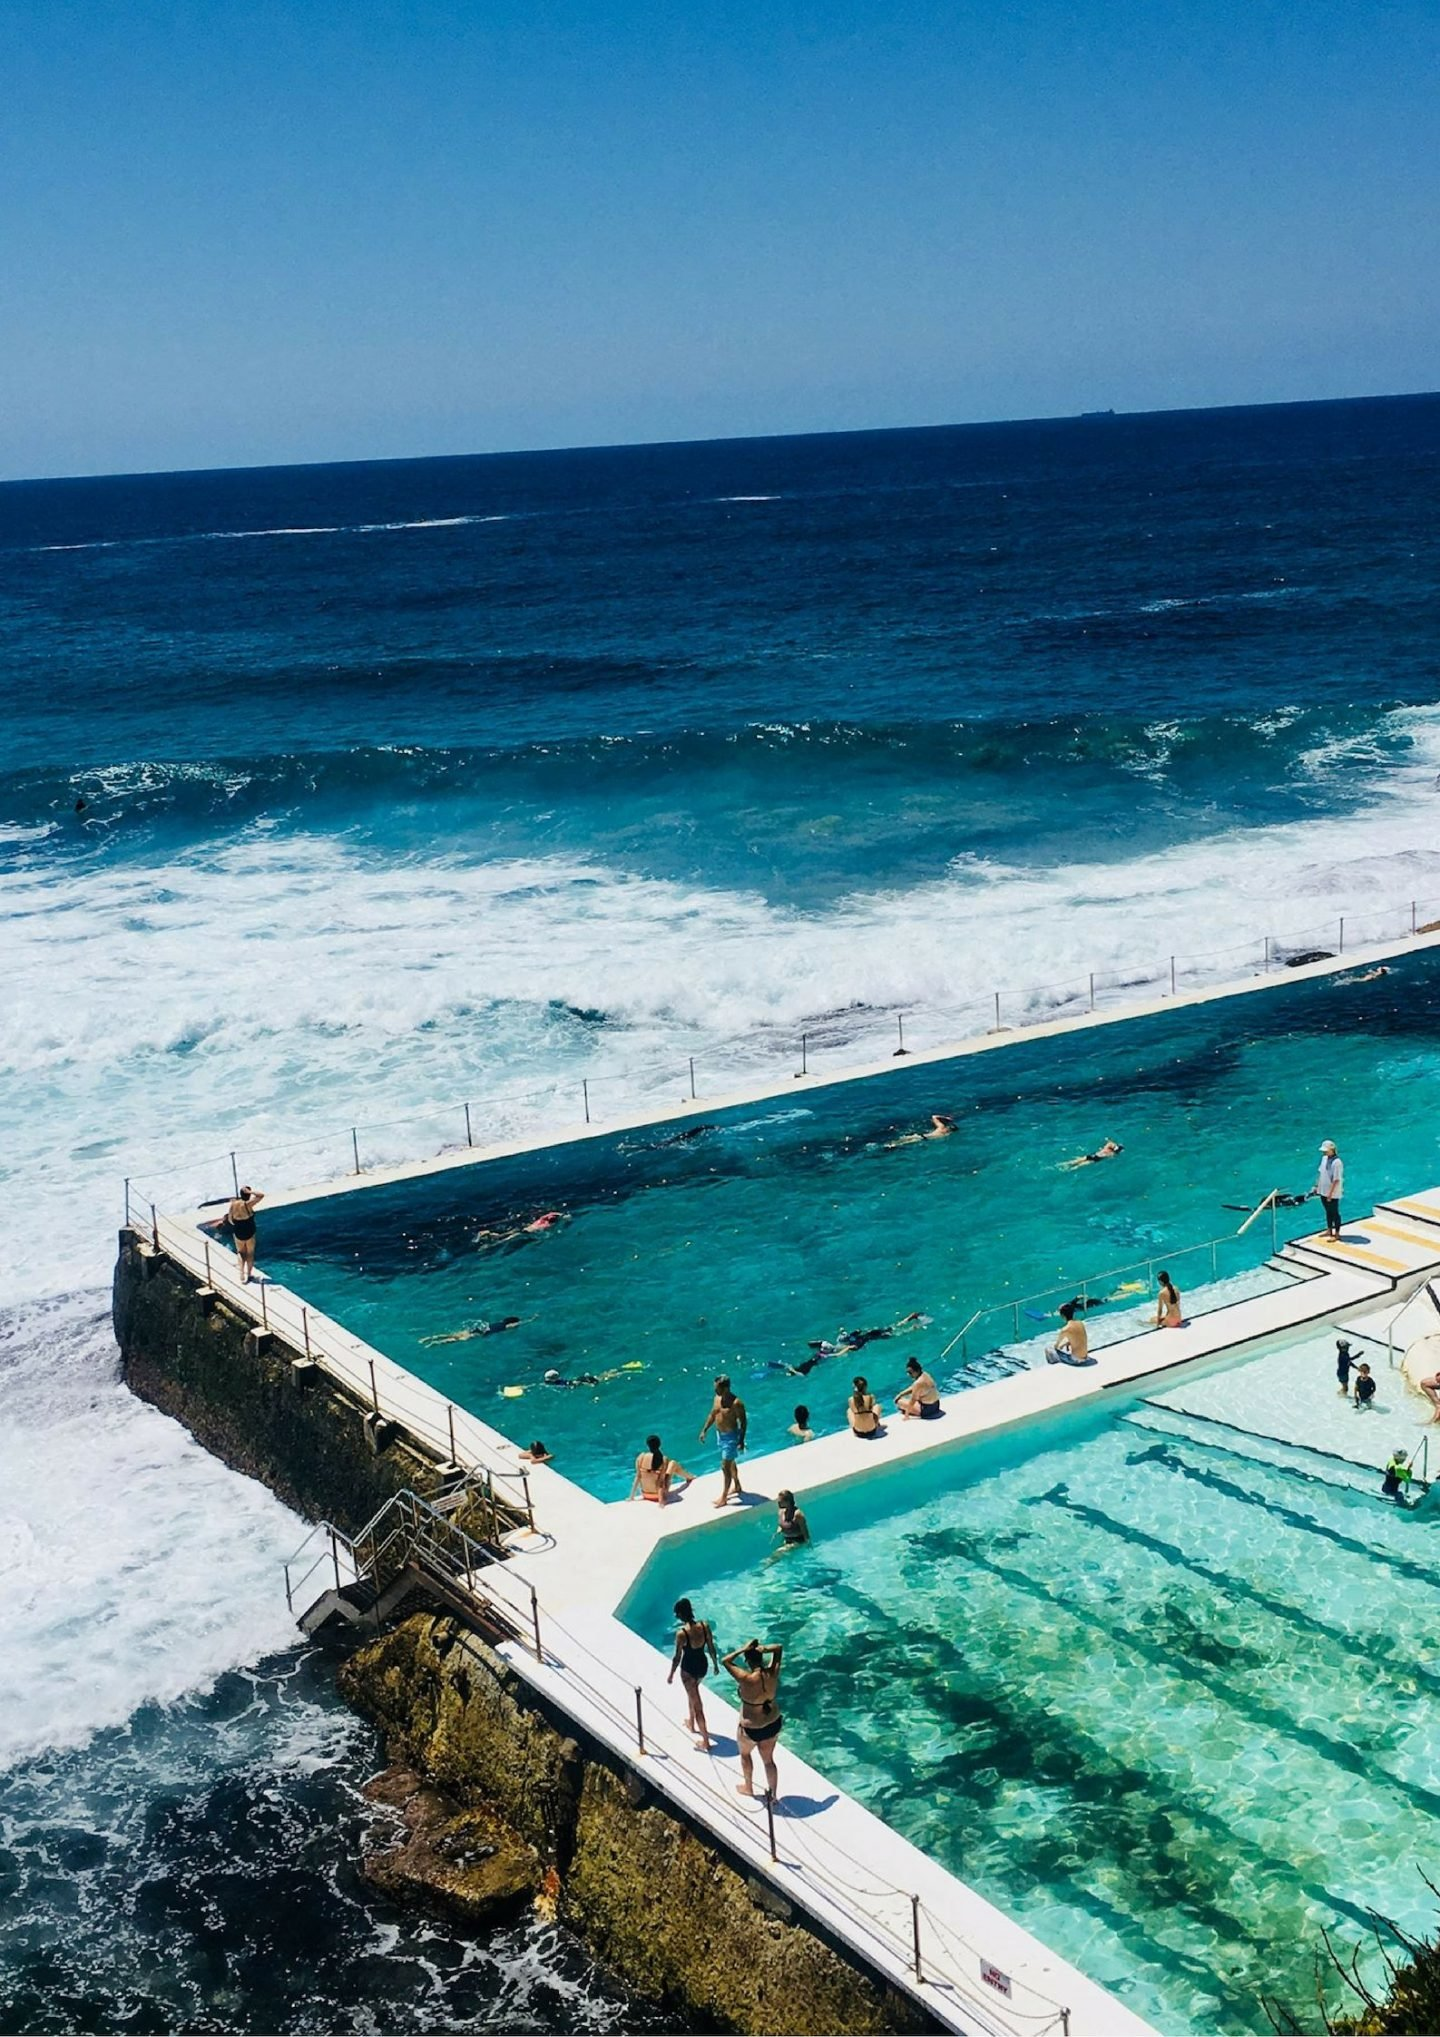 MINI GUIDE TO BONDI BEACH, SYDNEY